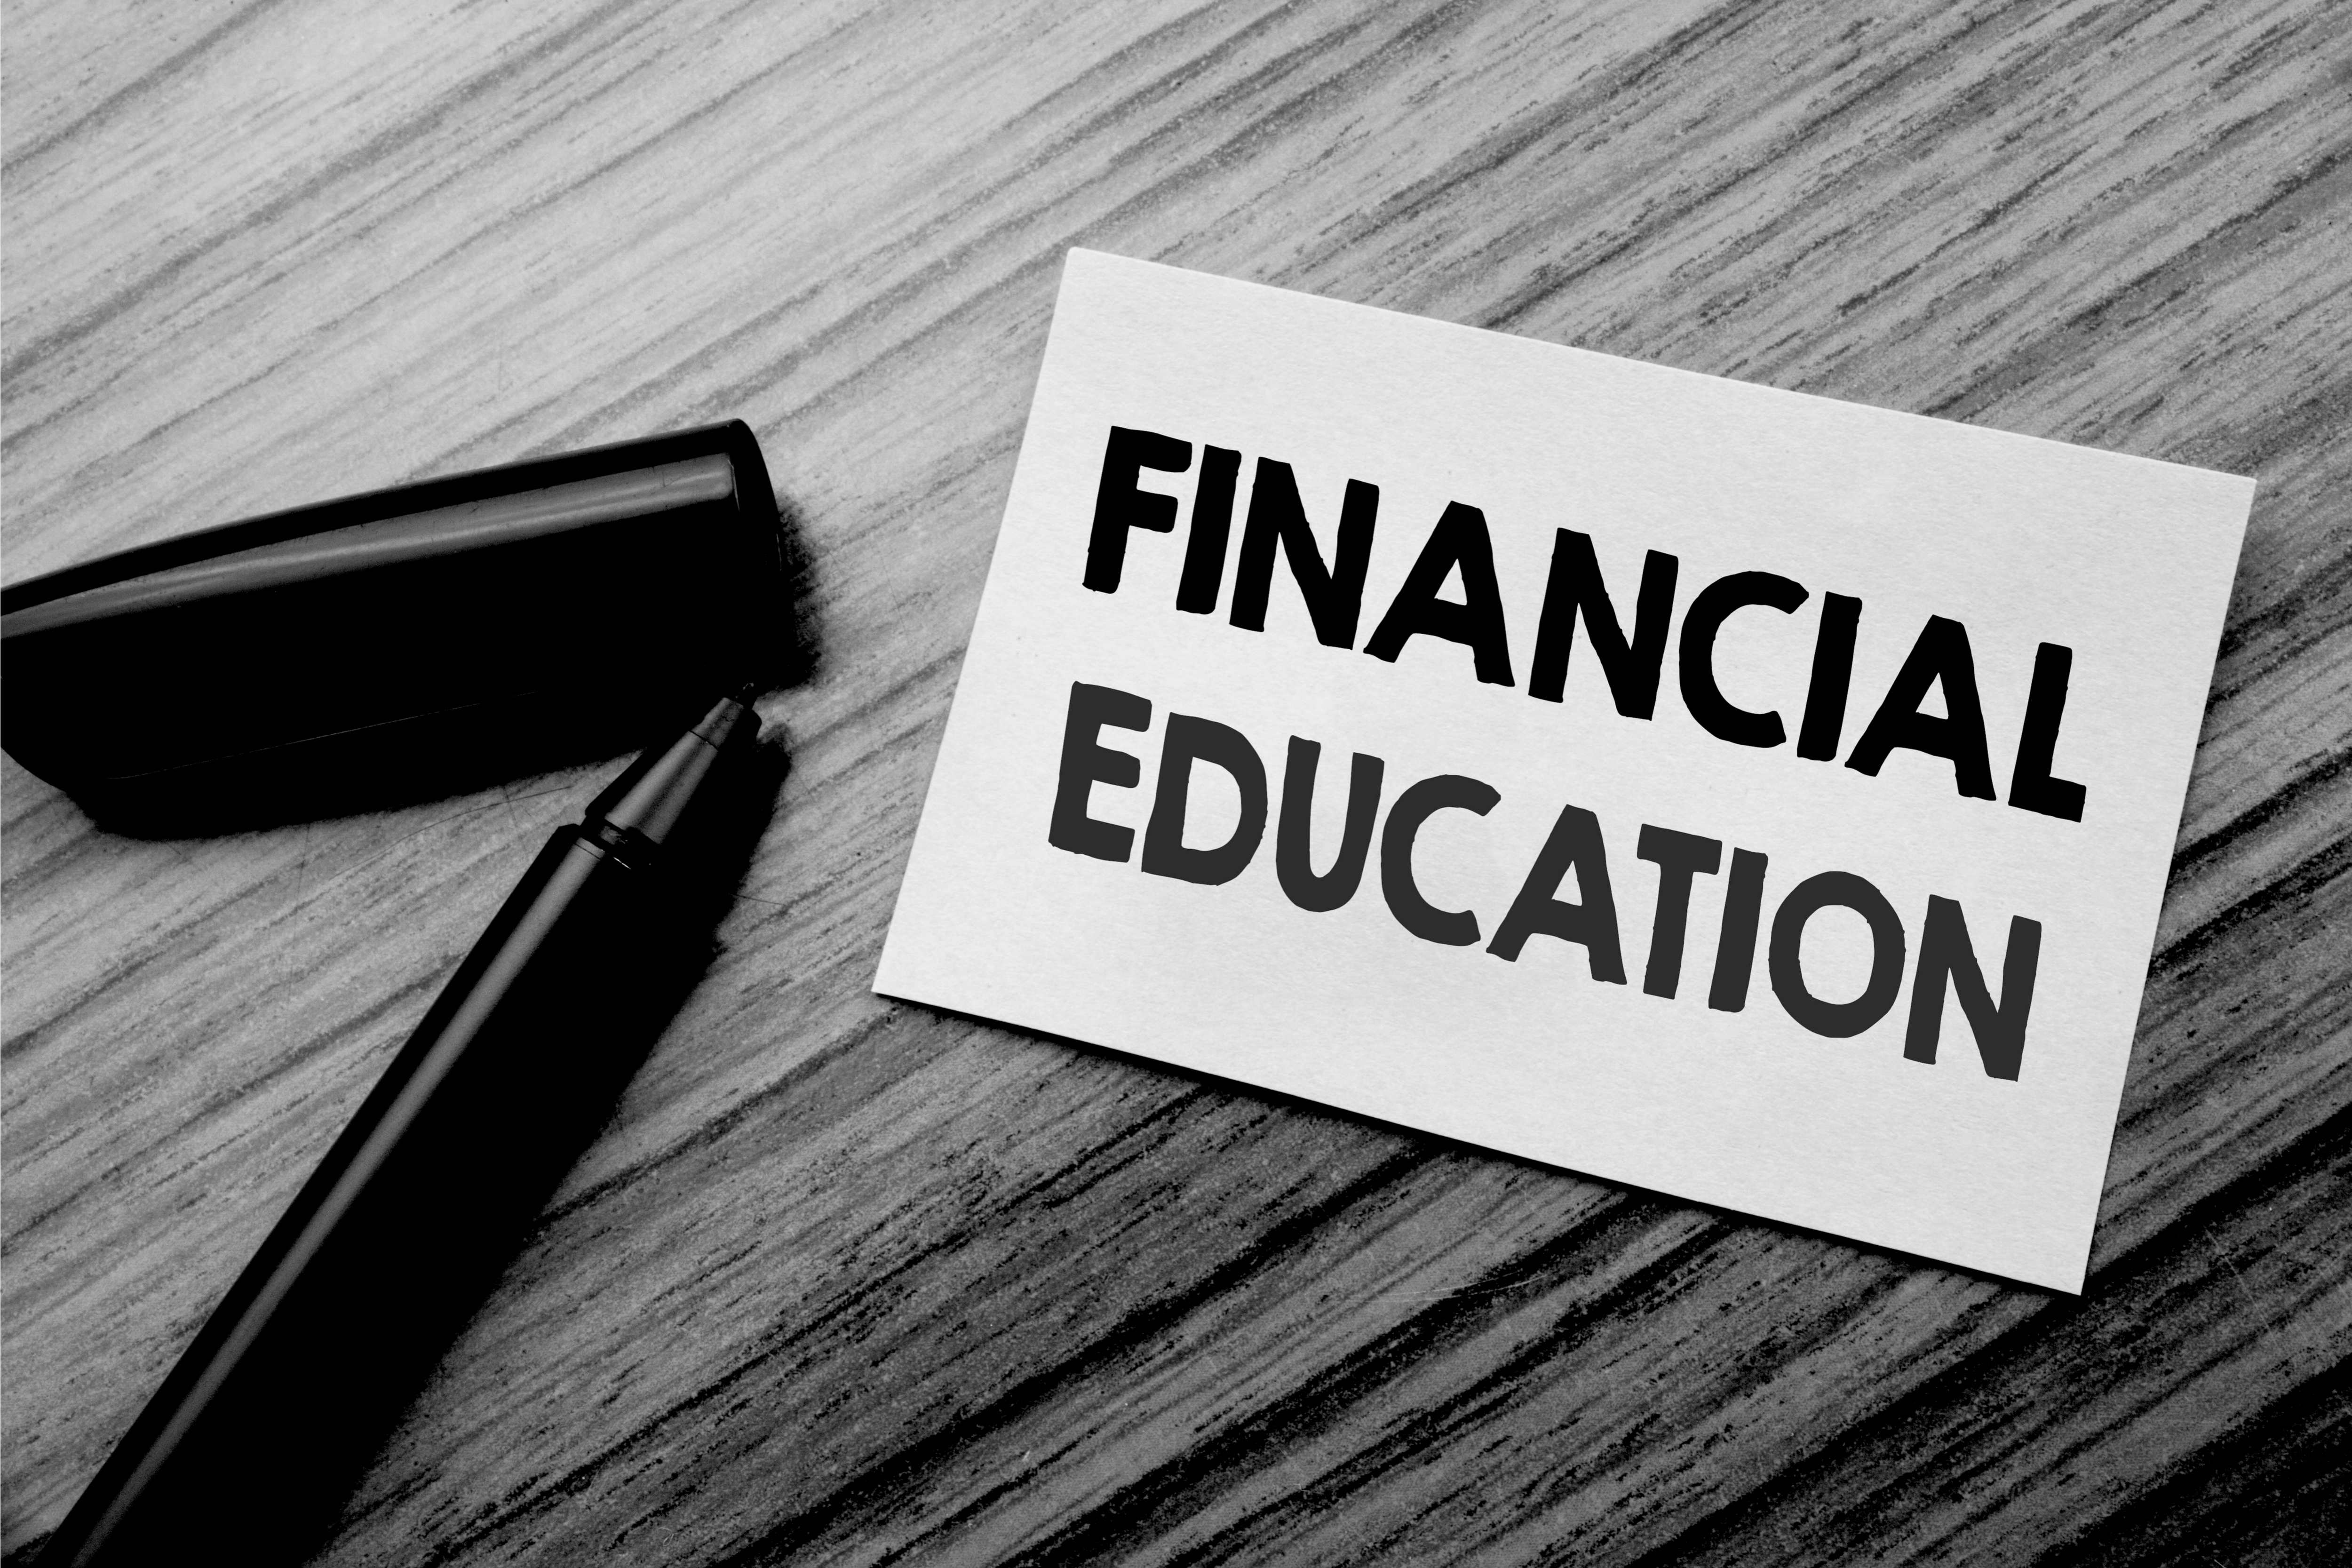 Retail Banking Trends – Financial Education as a Marketing Tool